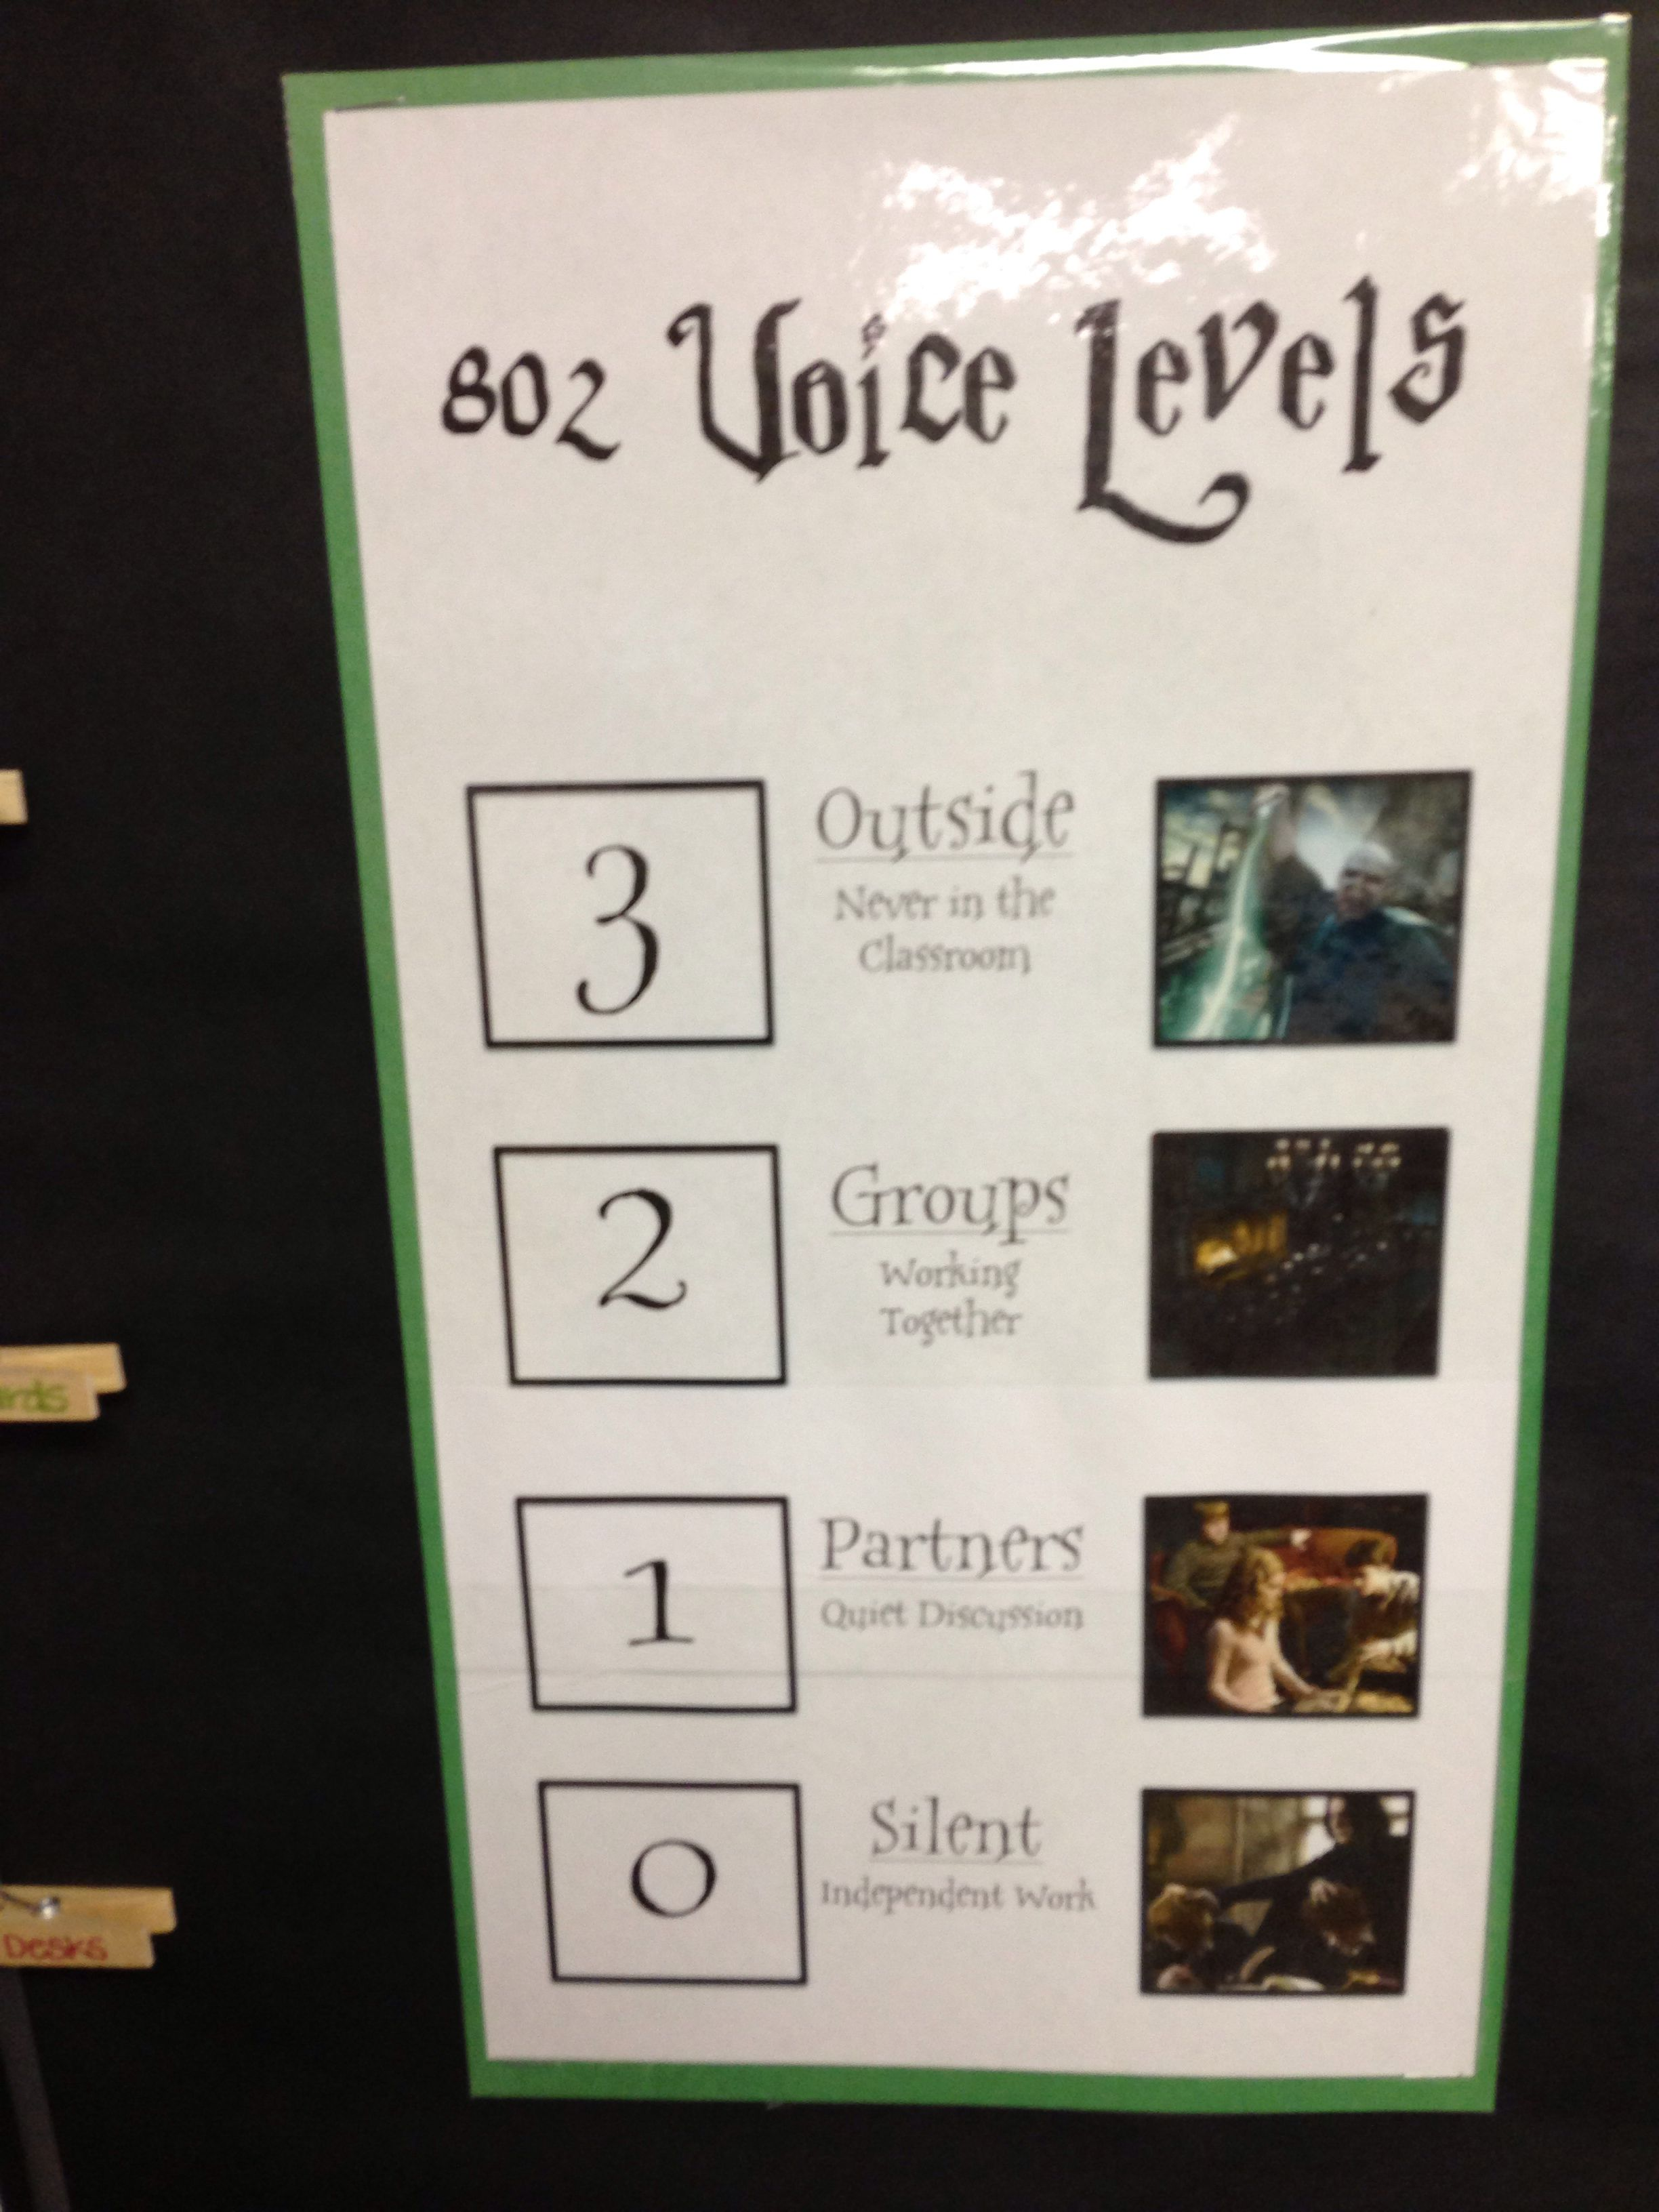 Harry Potter Classroom Voice Levels